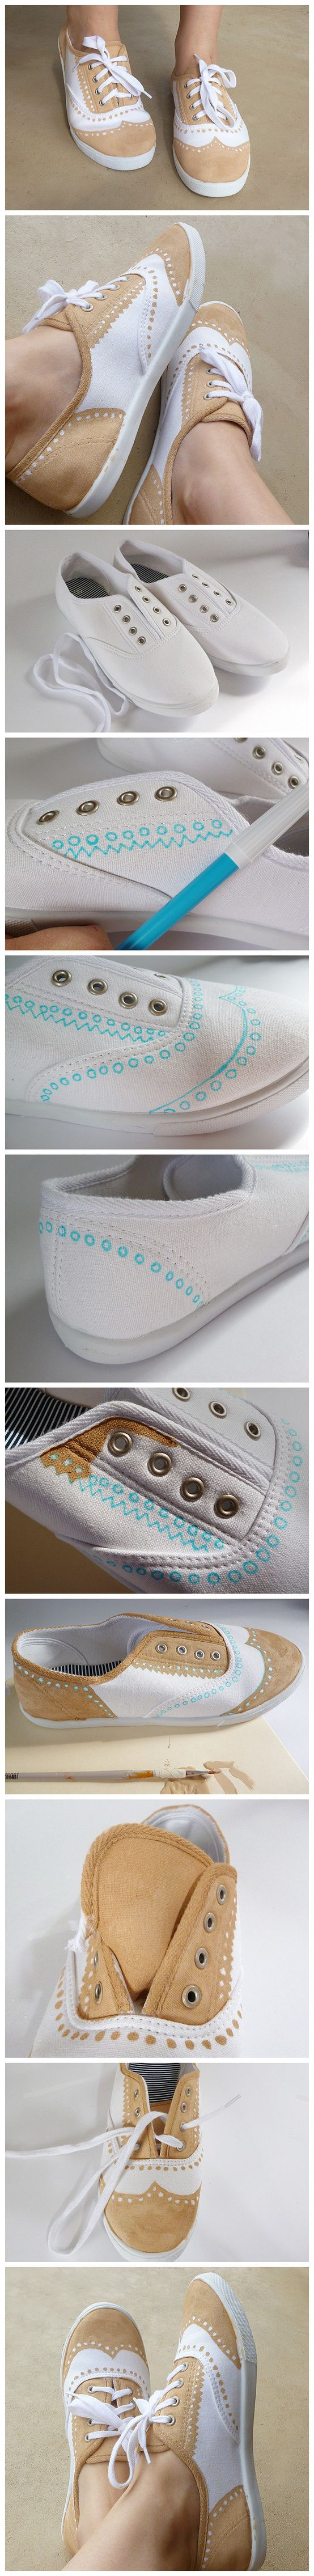 painting shoes - haha! love this!